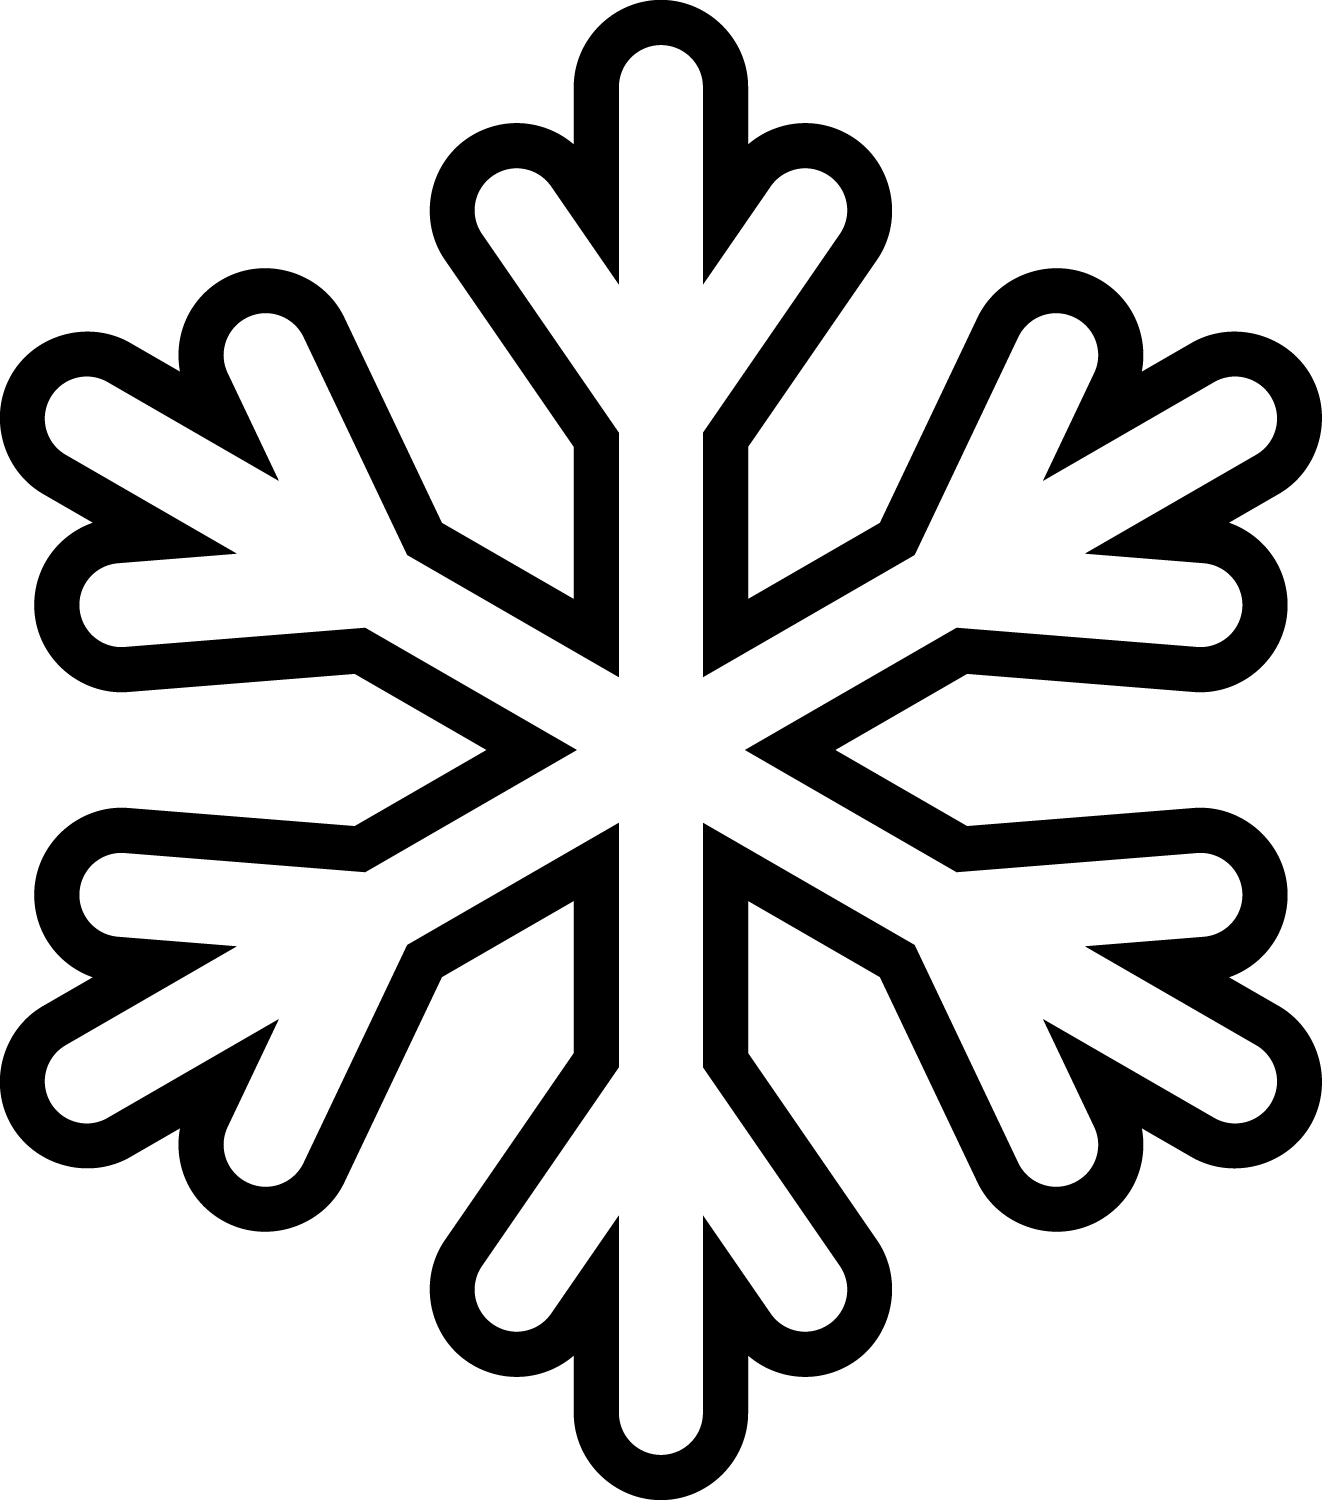 Silver snowflake clipart kids png transparent download snowflake-clipart-outline-xigKKLE5T.png.cf.png (1322×1500) | Diy ... png transparent download